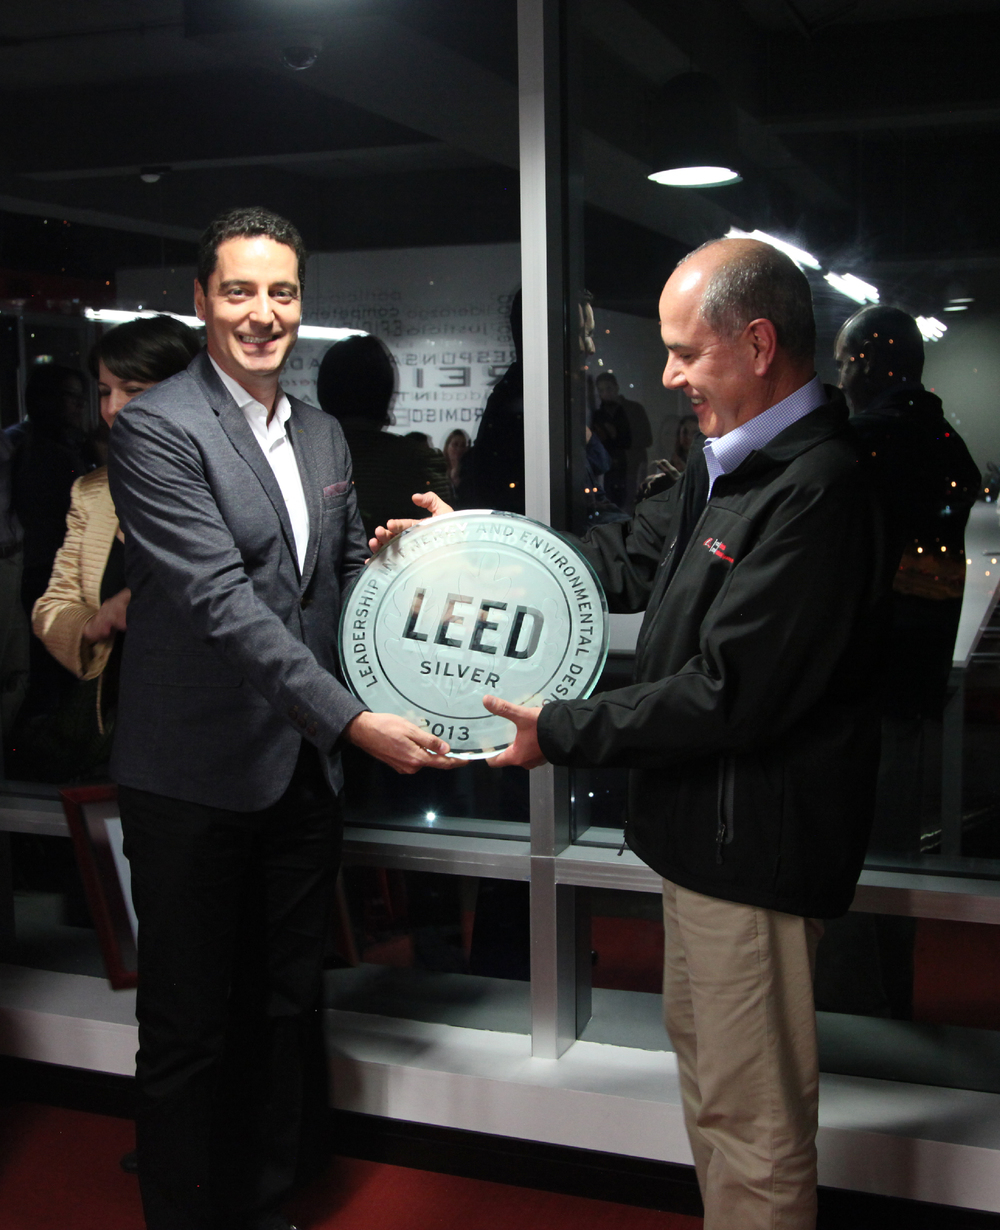 Mauricio presenting the LEED Silver plaque to Mr Eddy Wever CEO Multi Inversiones DIP